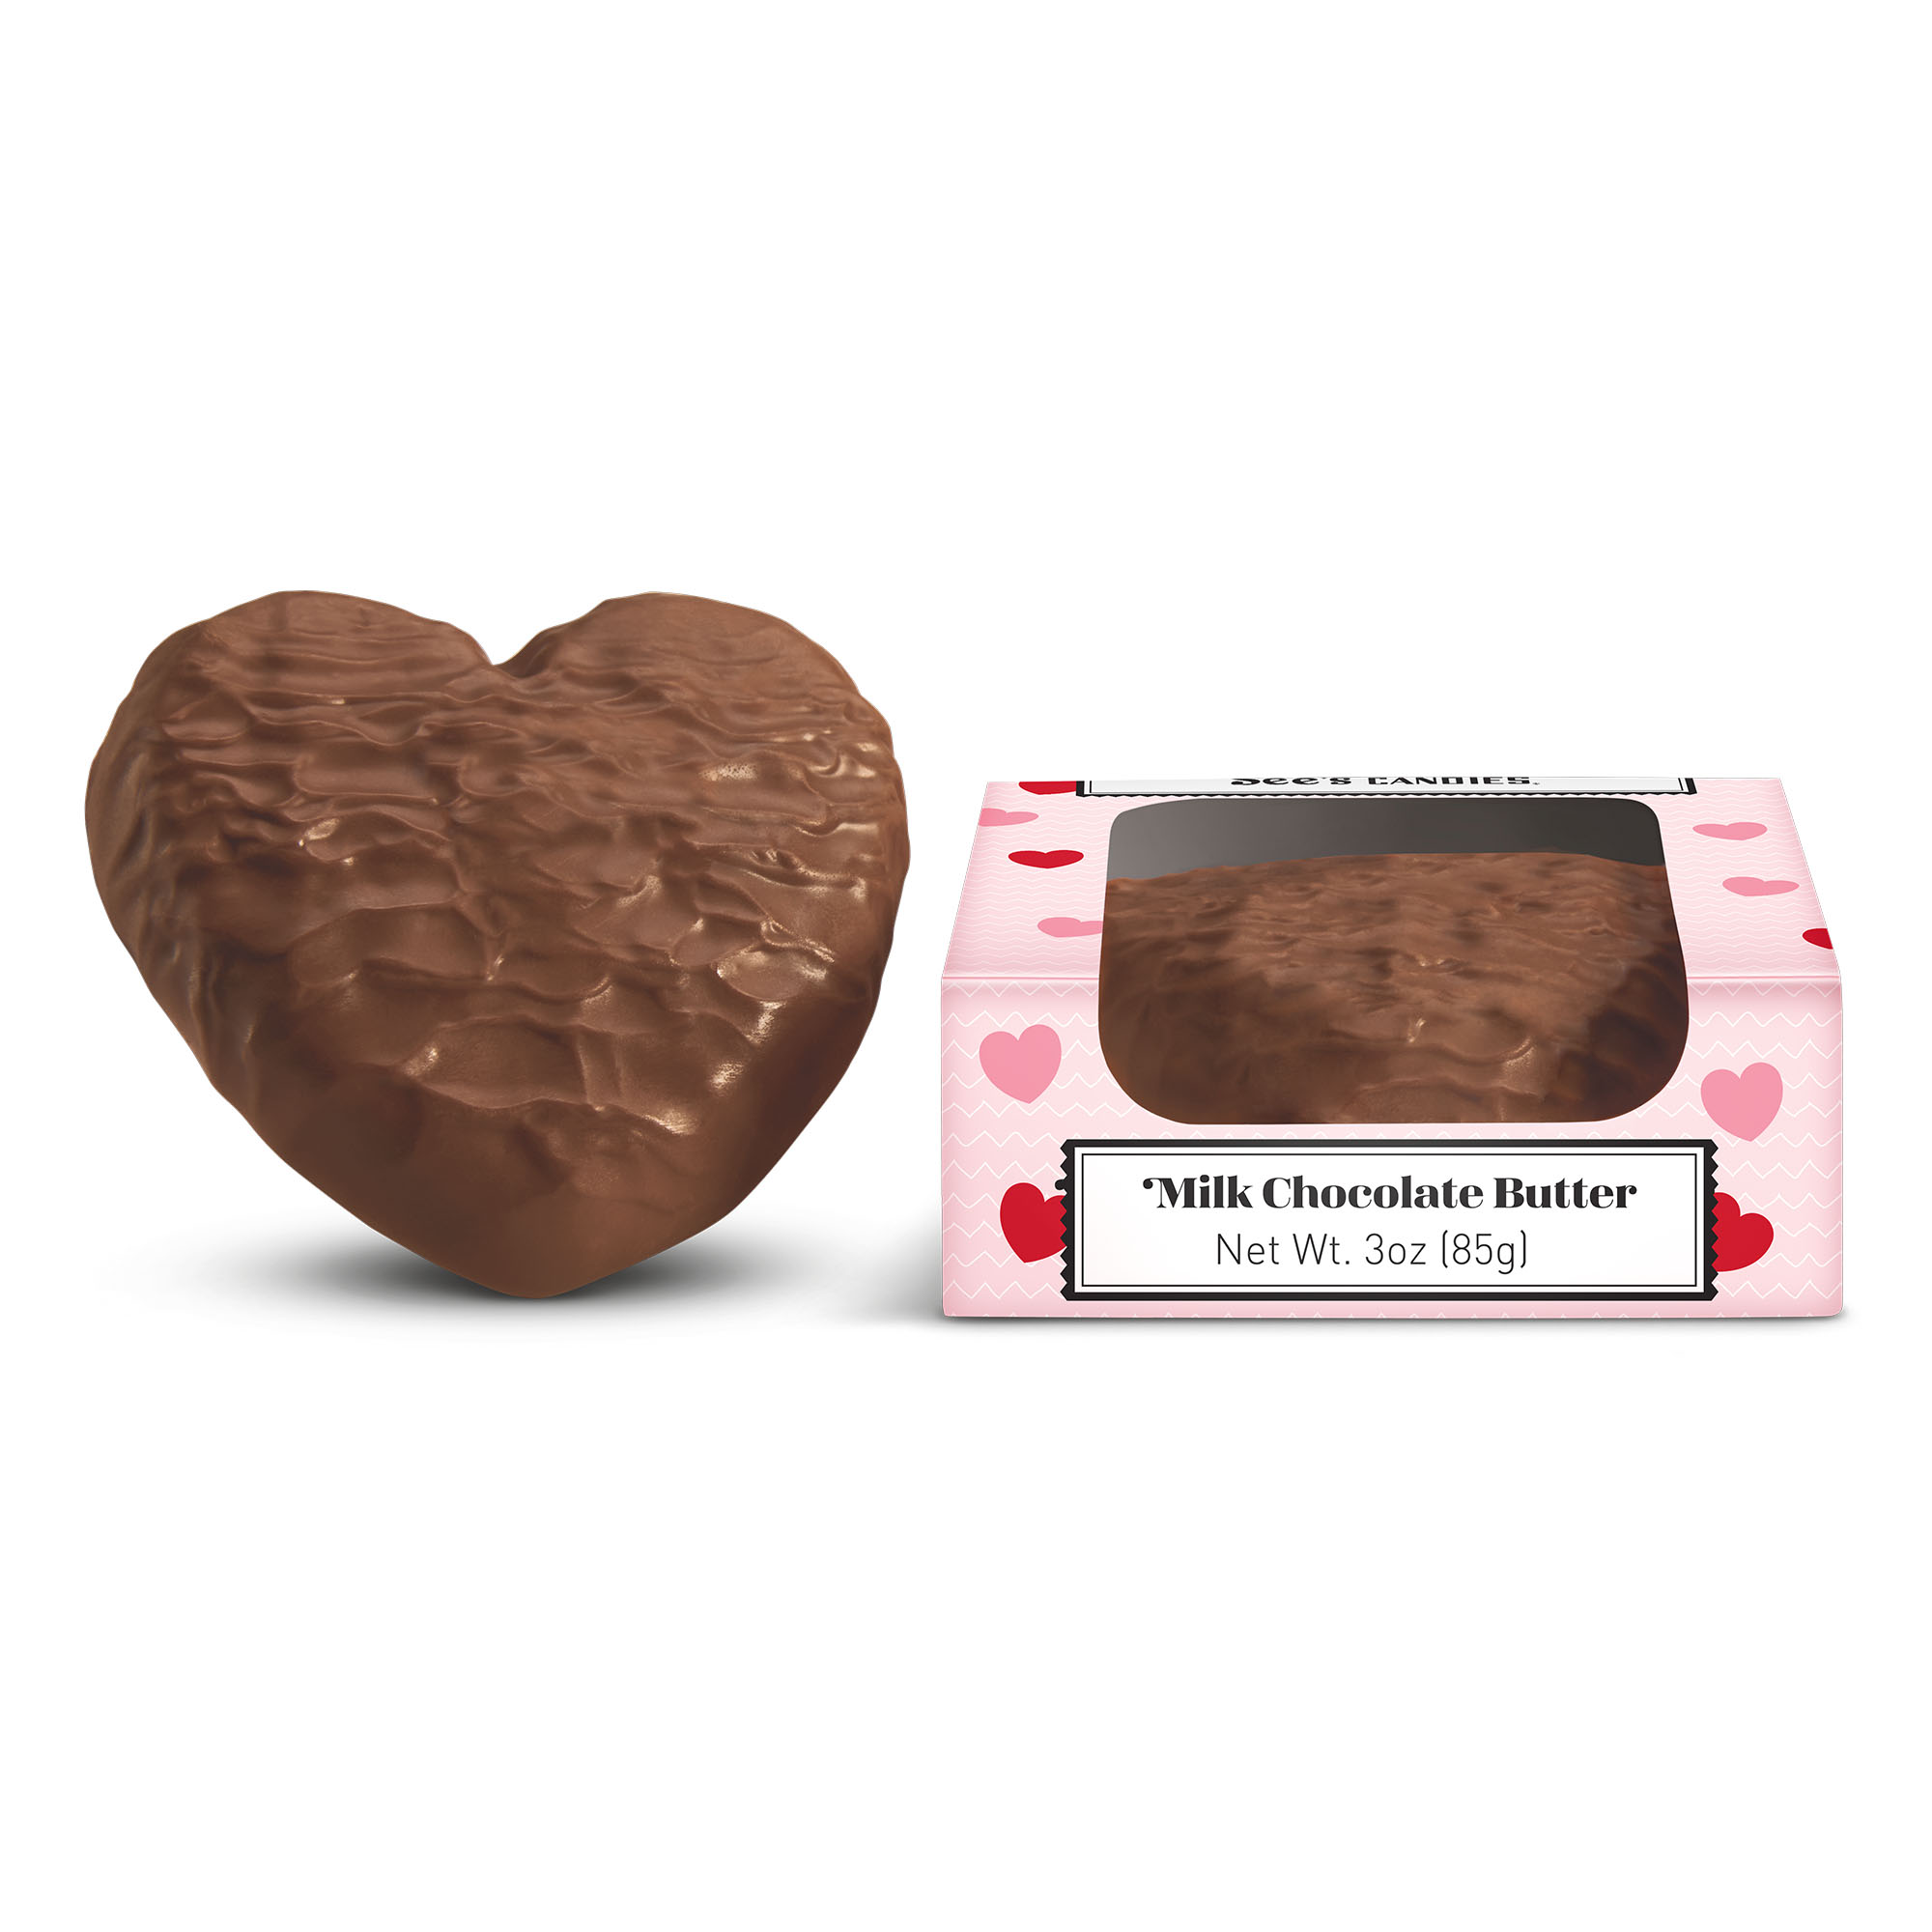 View of Milk Chocolate Butter Heart